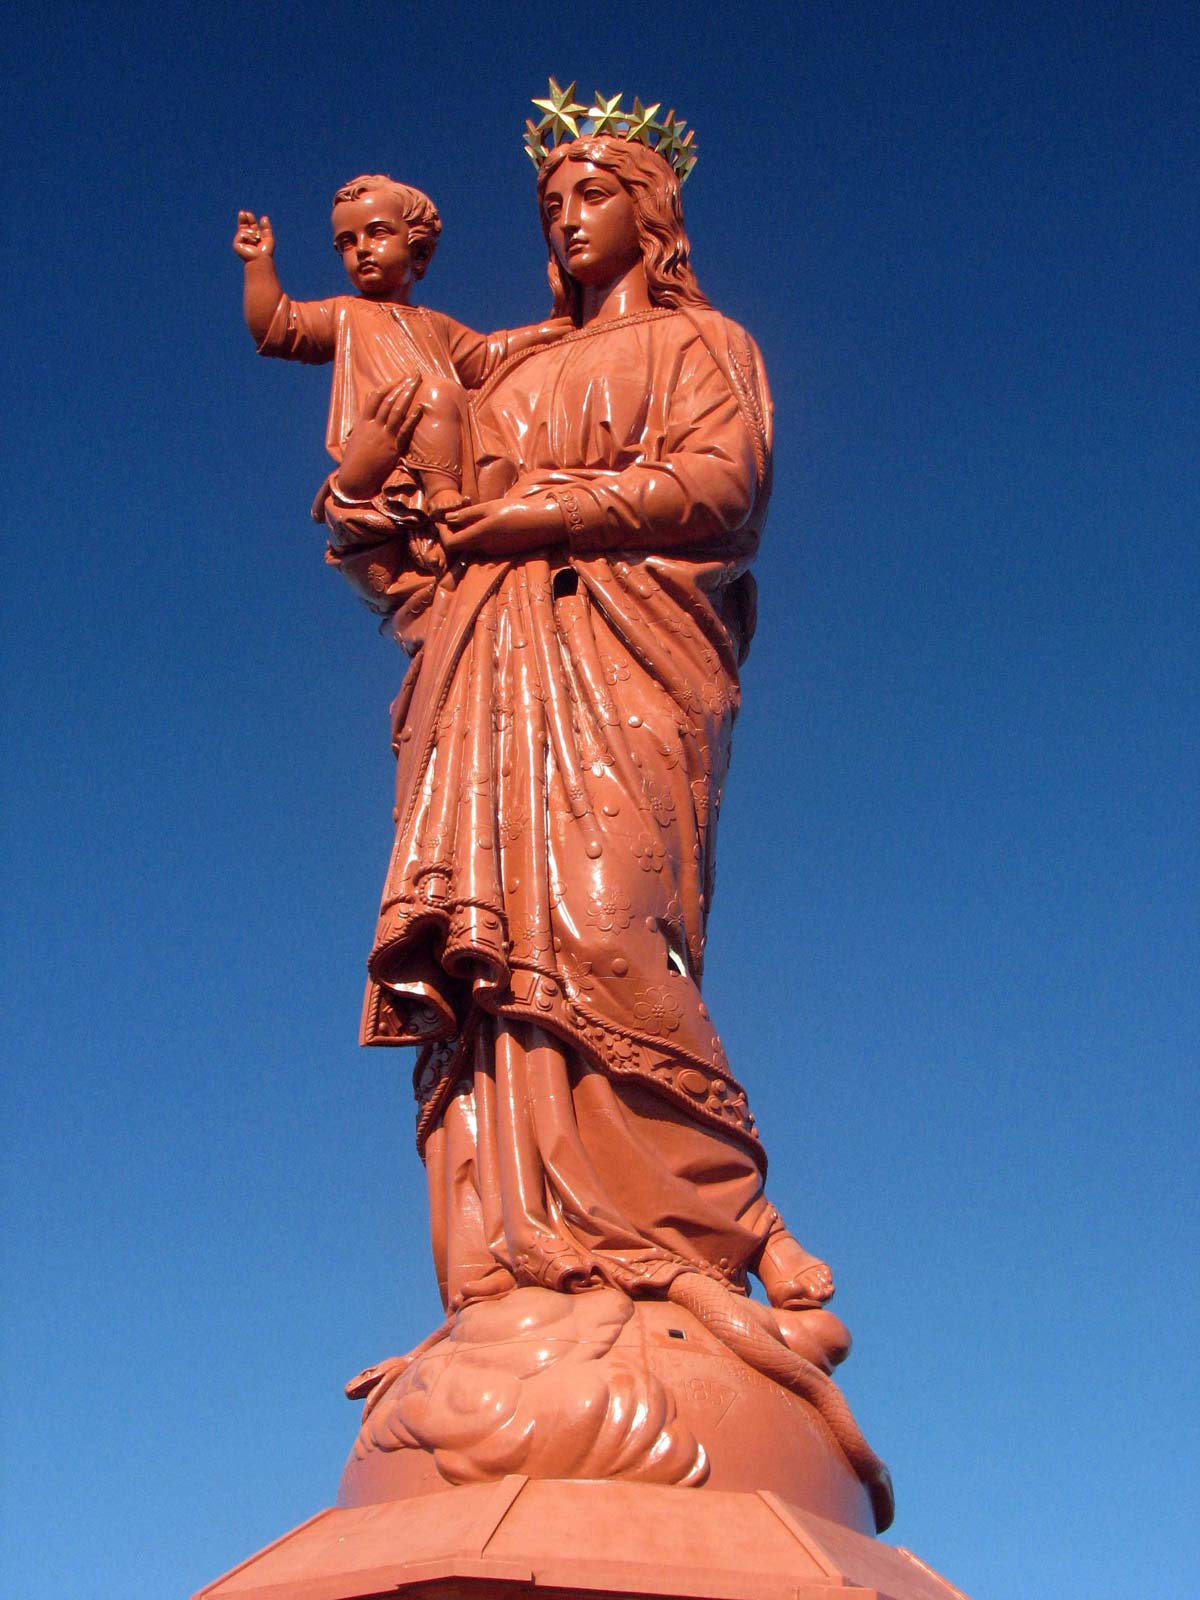 the statue of Notre-Dame de France